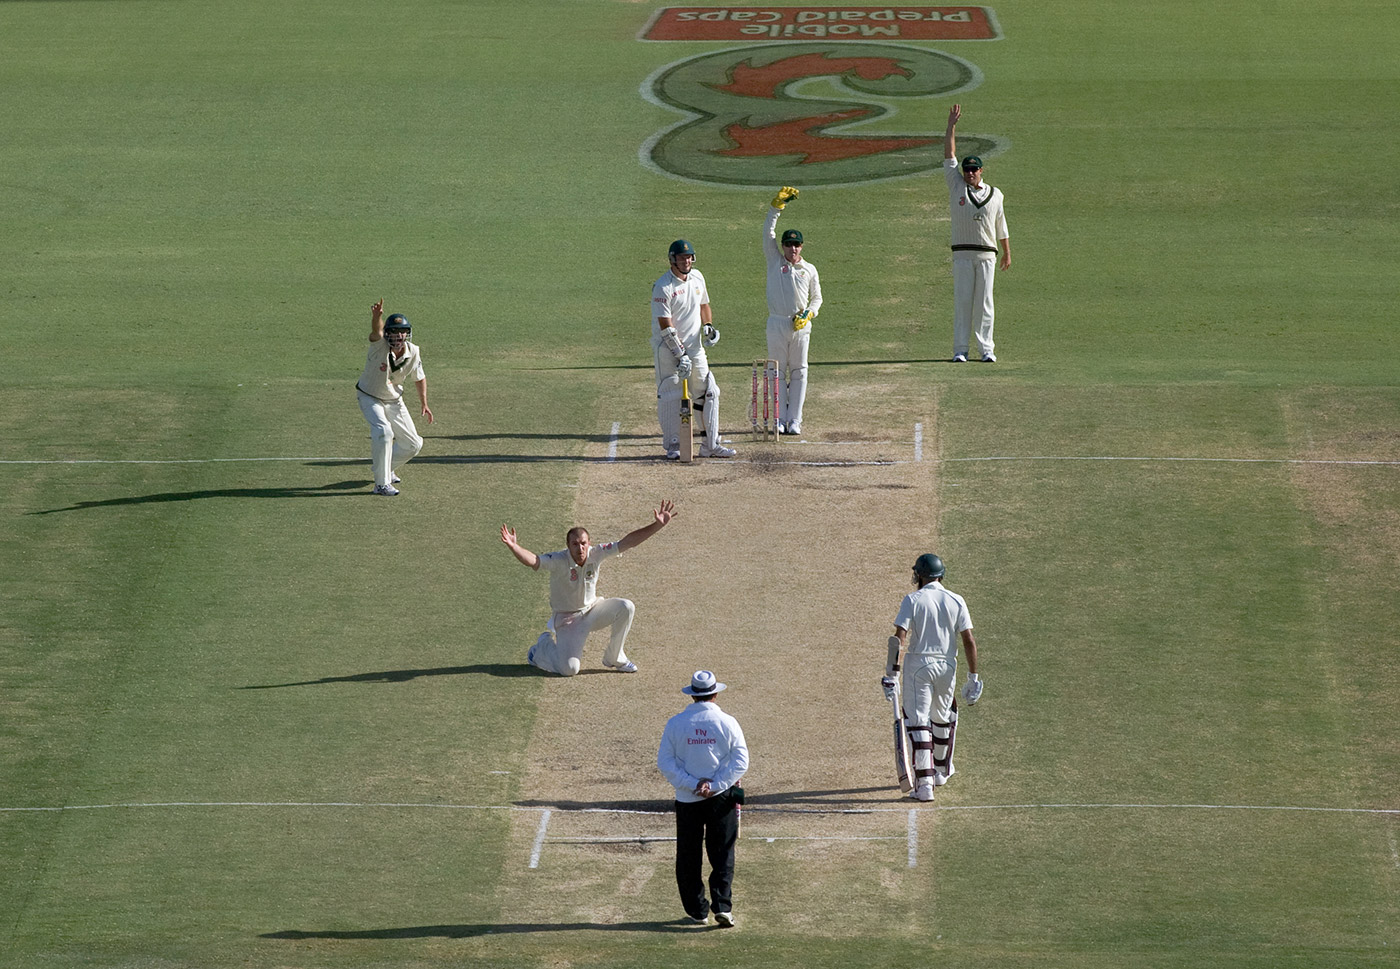 Are you there God, it's me, Jason. Krejza toiled through 49 overs for a solitary wicket in Perth against South Africa in 2008